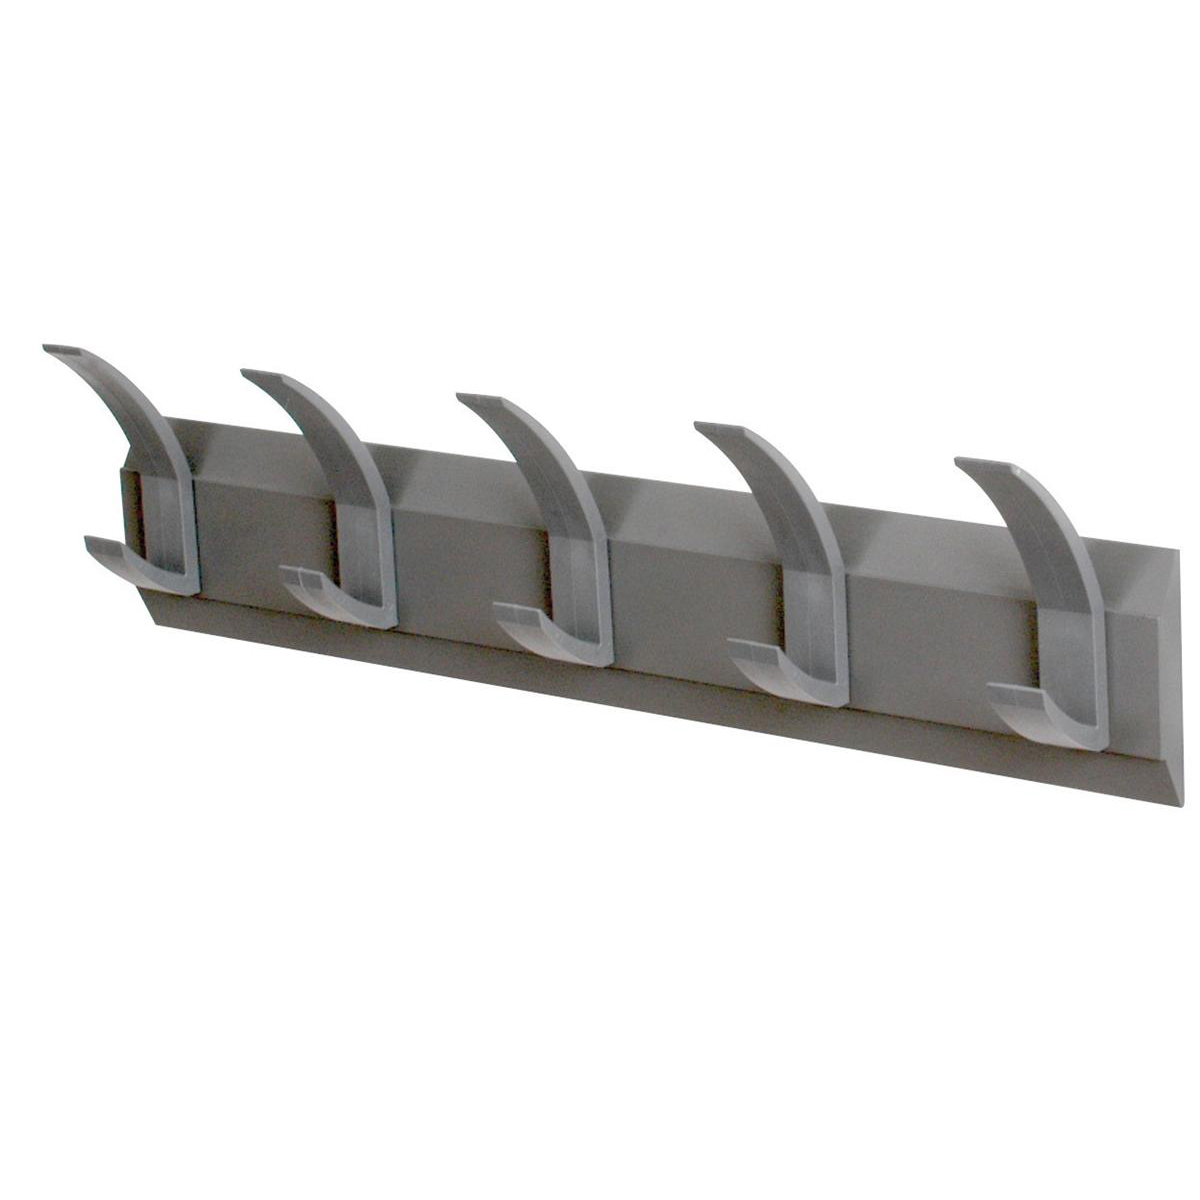 Image for Acorn Hat and Coat Wall Rack with Concealed Fixings 5 Hooks 600x50x120mm Graphite Ref 319875